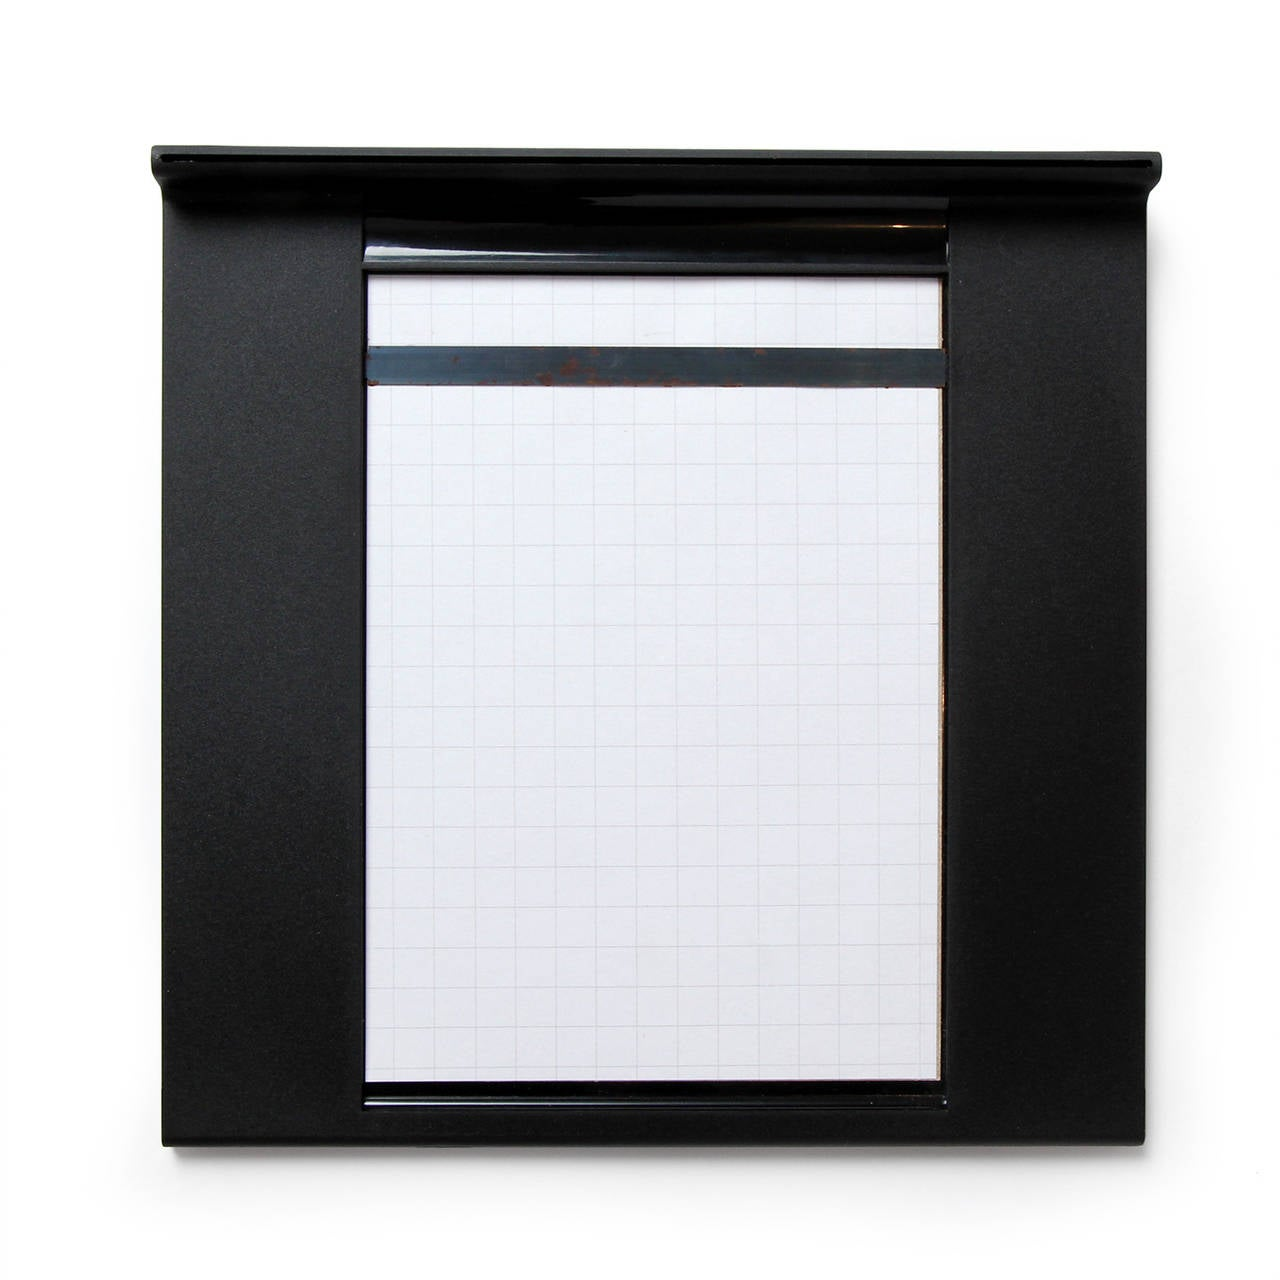 A set of sleek, finely detailed and elegant notepad holders in black plastic, the smaller one having a fitted pen.